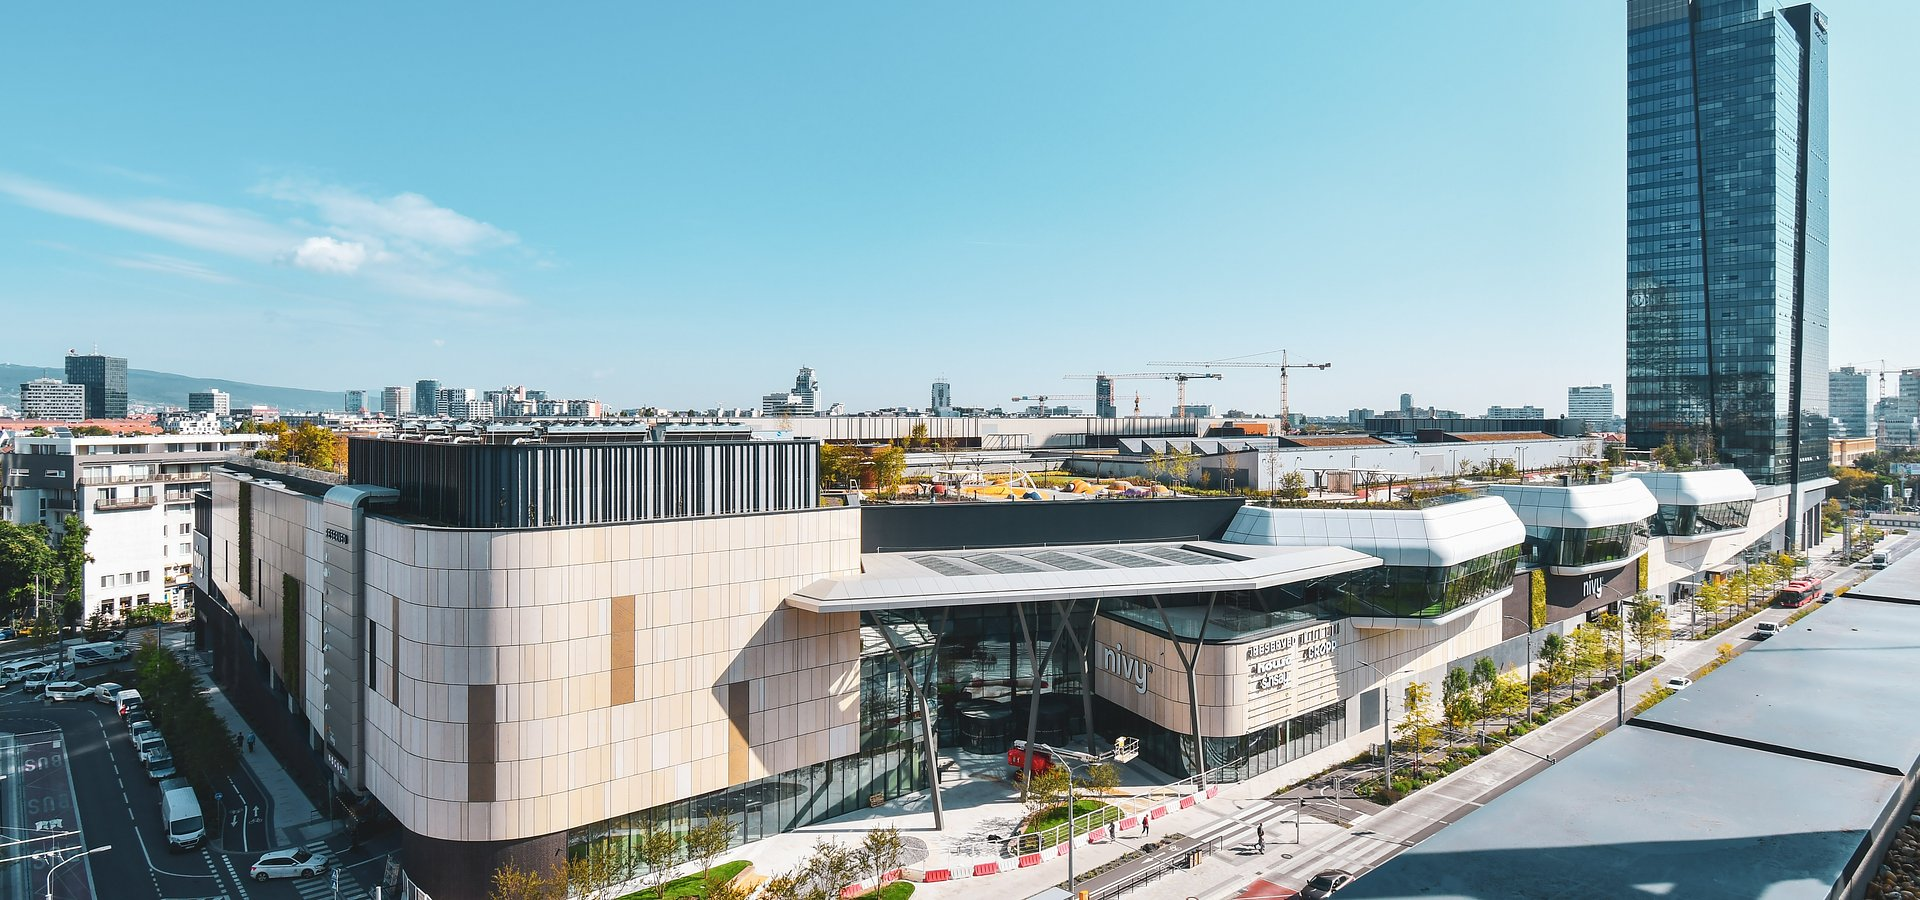 Multifunctional Nivy mall by HB Reavis welcomes almost 330,000 visitors in its first week